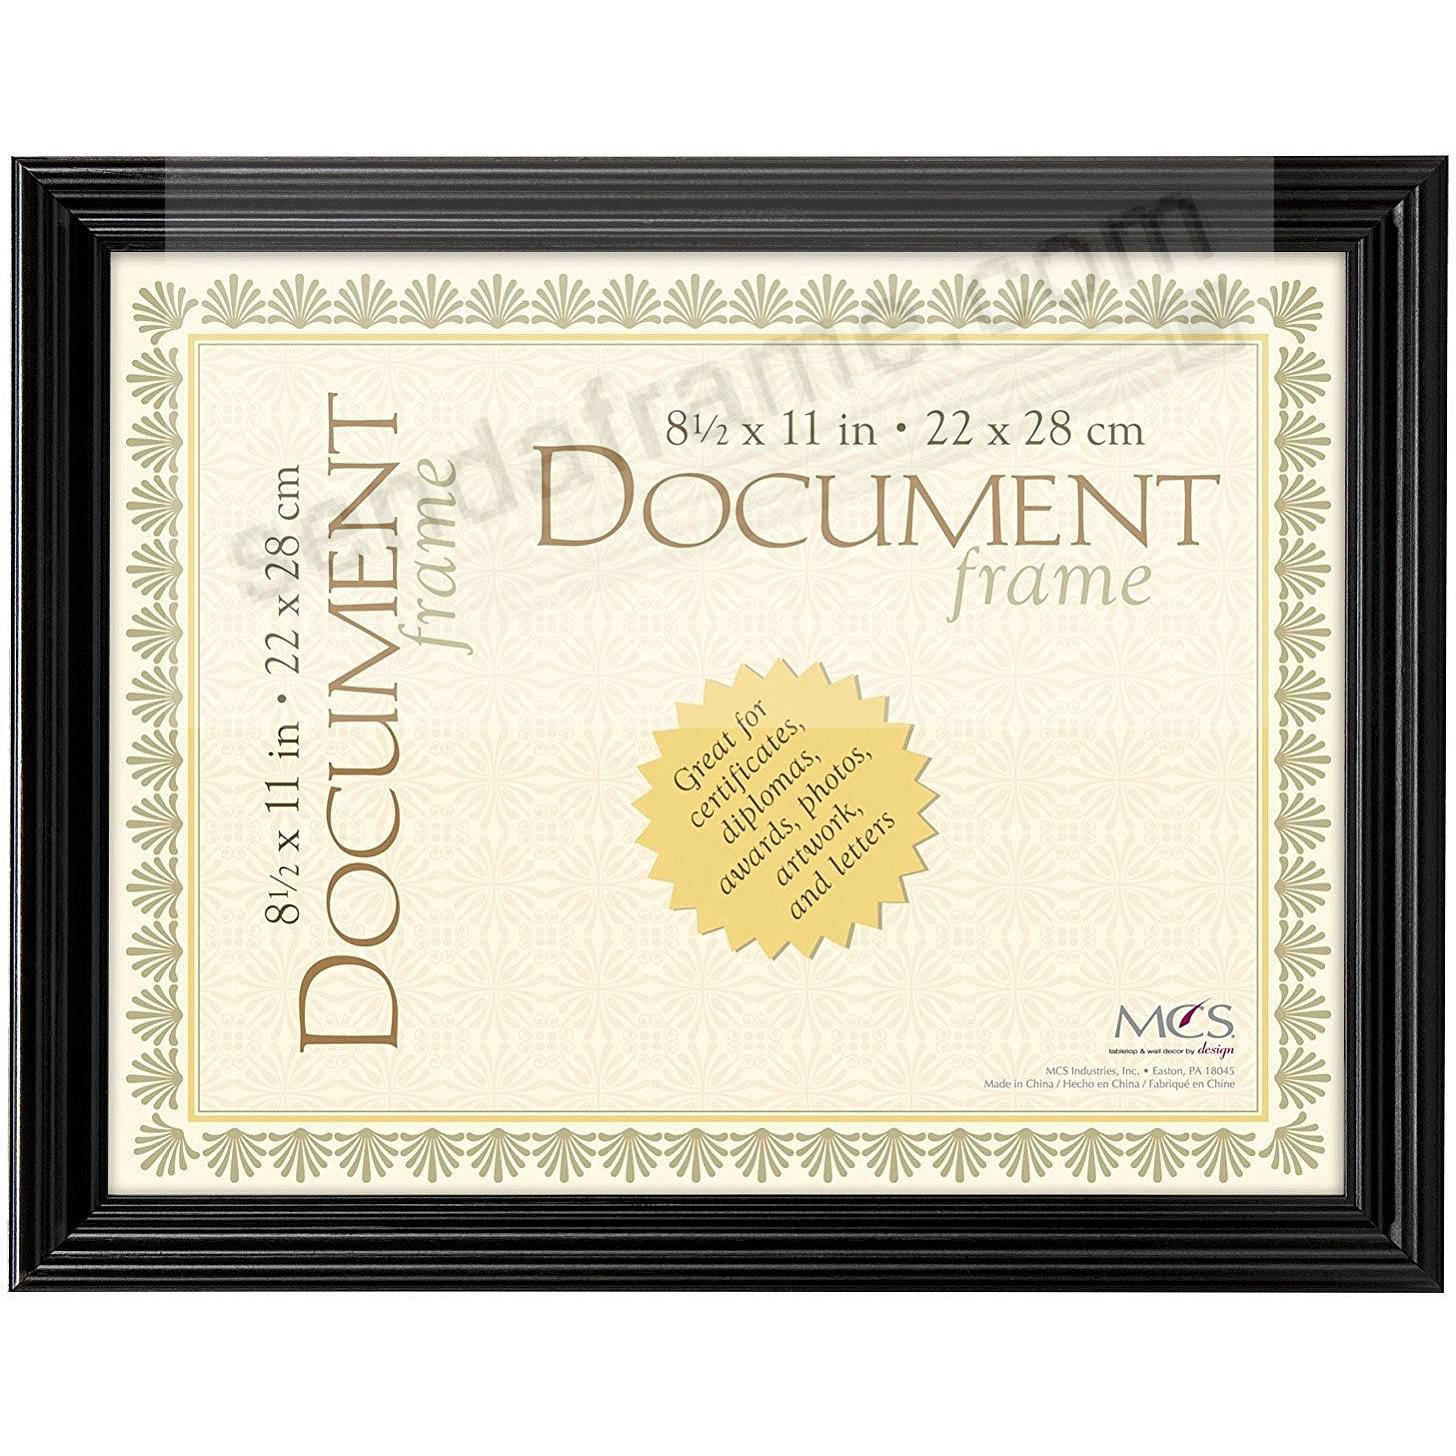 STYLE ONE Black Solid Wood 8½x11 Document frame from MCS®